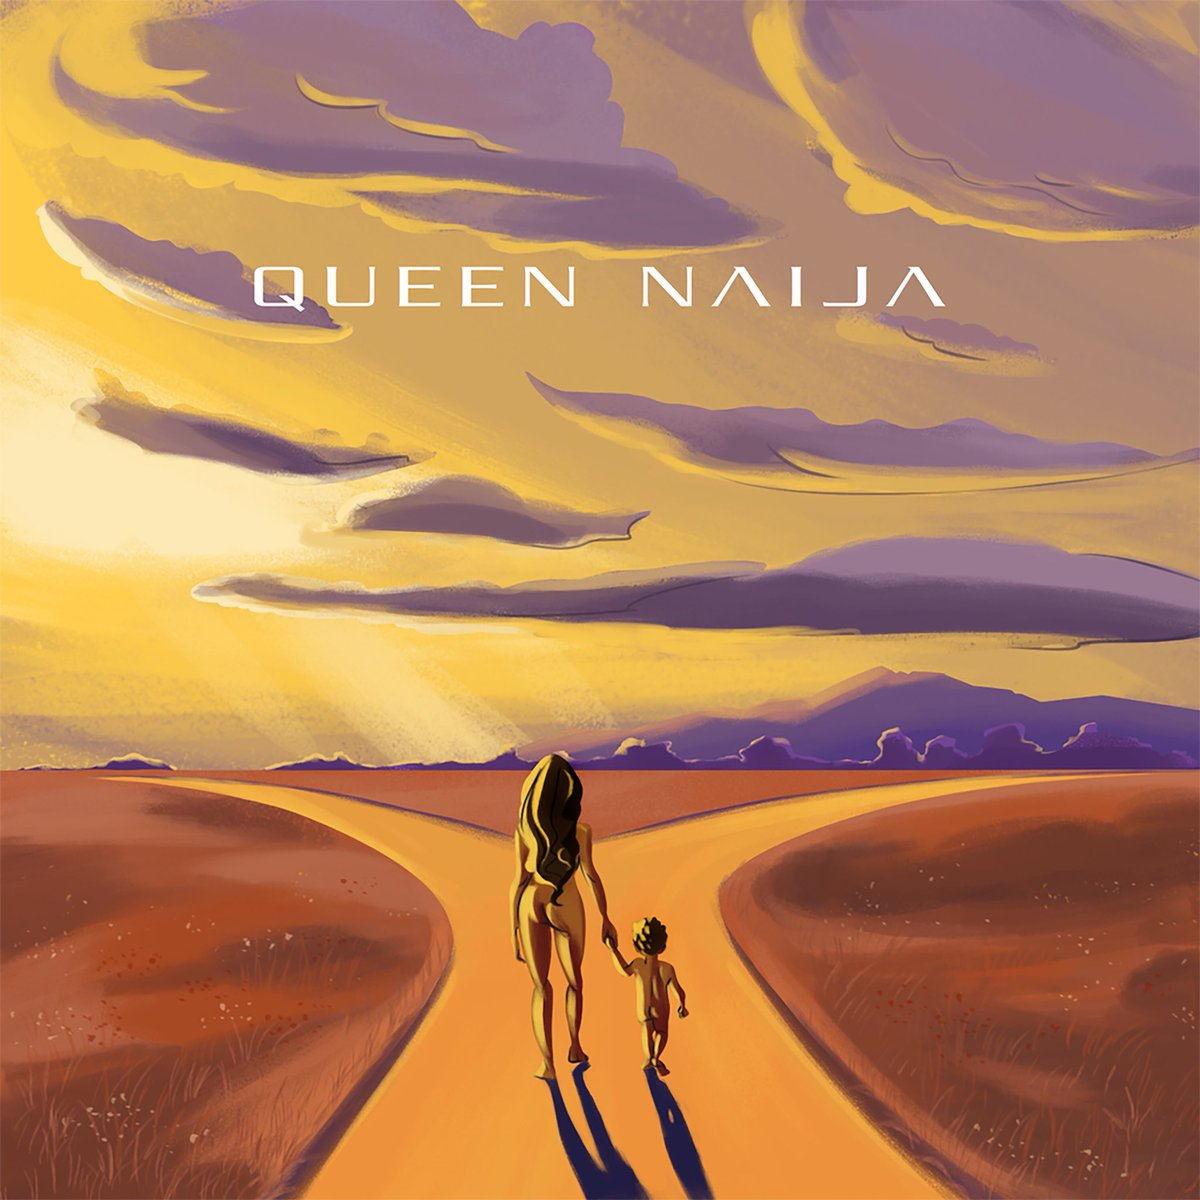 test Twitter Media - So excited to share the cover of my Self-Titled EP that will be released on 7/27!   It will be live tonight for Pre-order & Pre-save at 9pm PT/12am ET #queennaija #music #medicine #karma https://t.co/N5HdCZo8S9